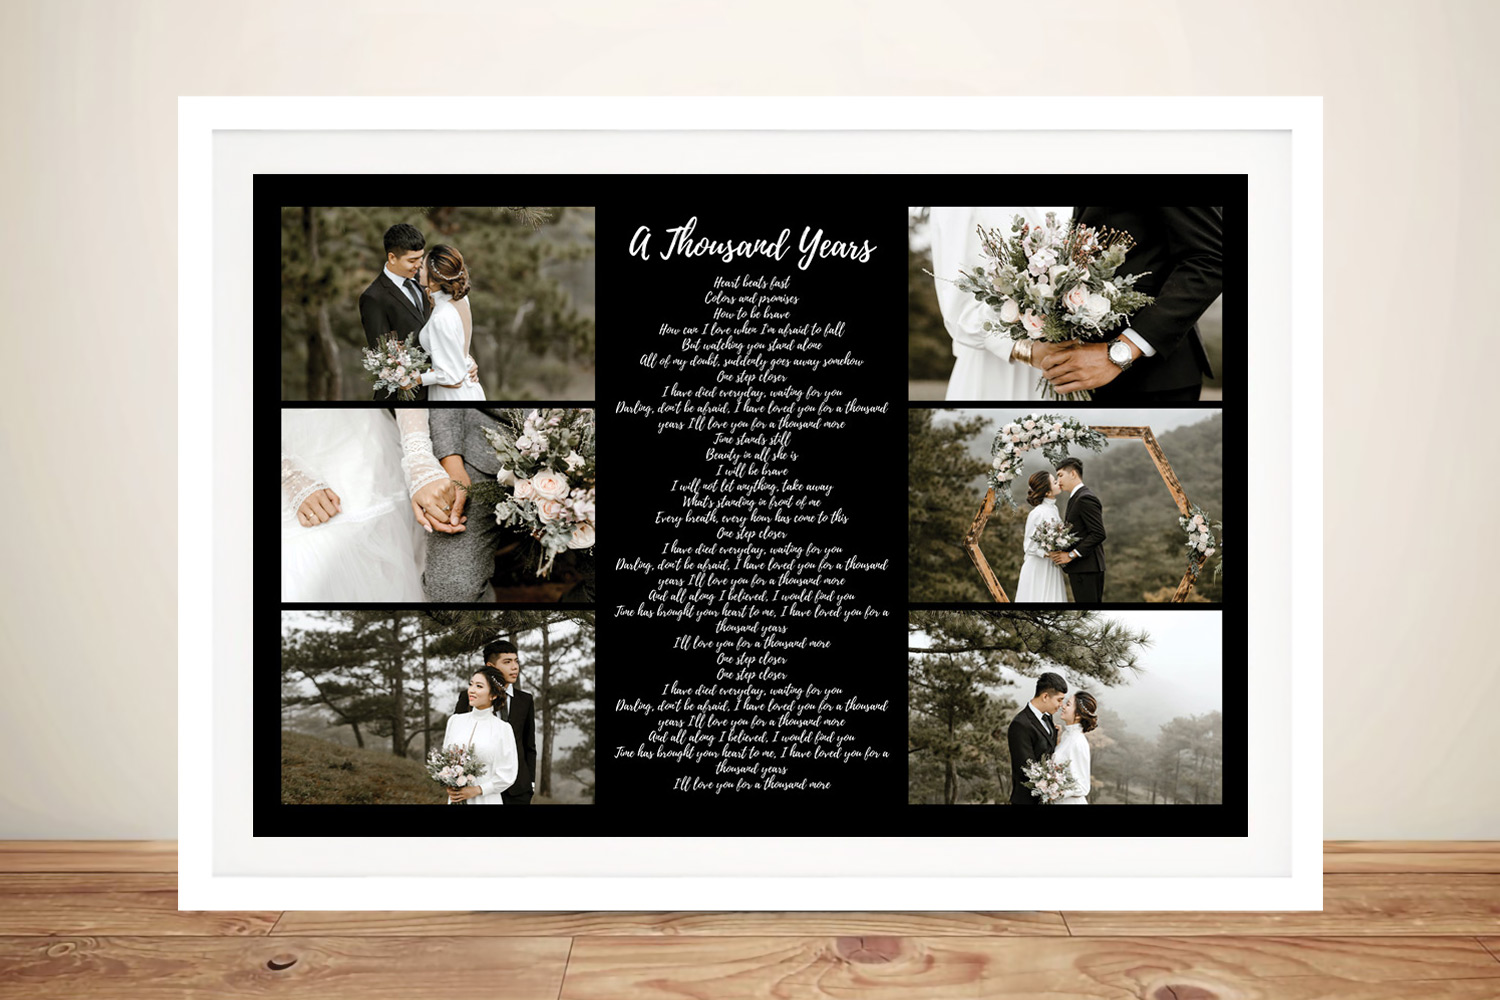 Buy a Large Song Lyrics Canvas Photo Collage | Song Lyrics Photo Collage